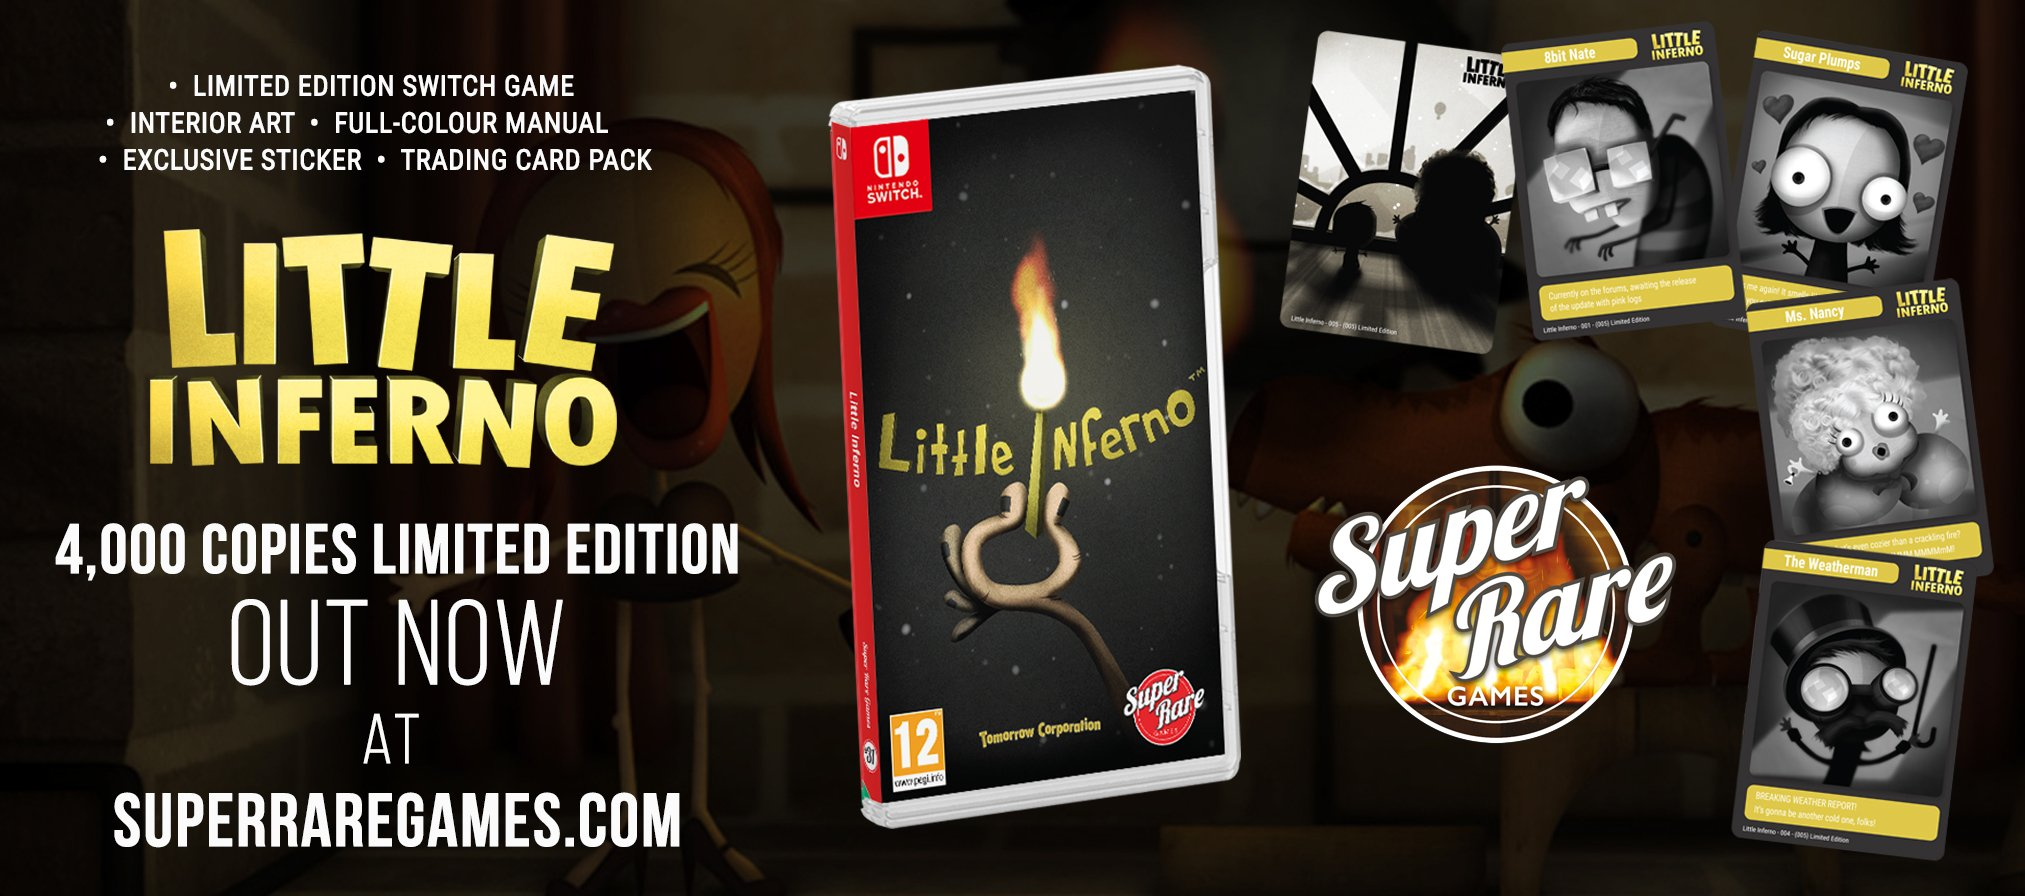 Super Rare Games Little Inferno Switch contest out now